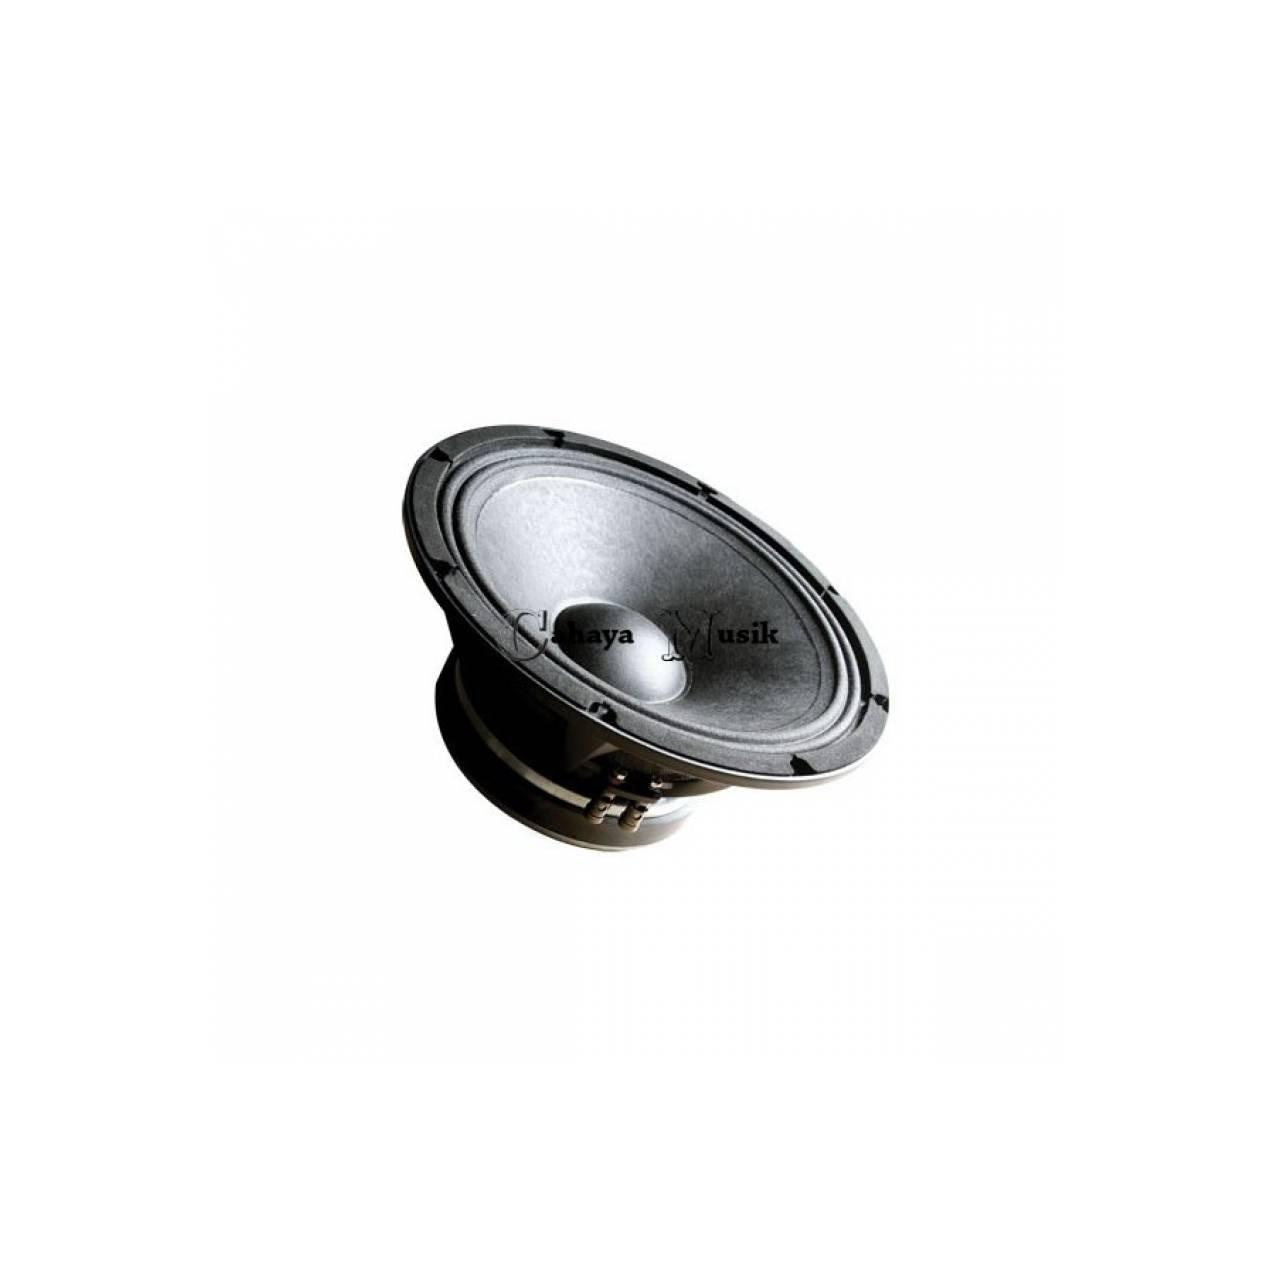 speaker 12 PA 7512 M FABULOUS BY ACR original